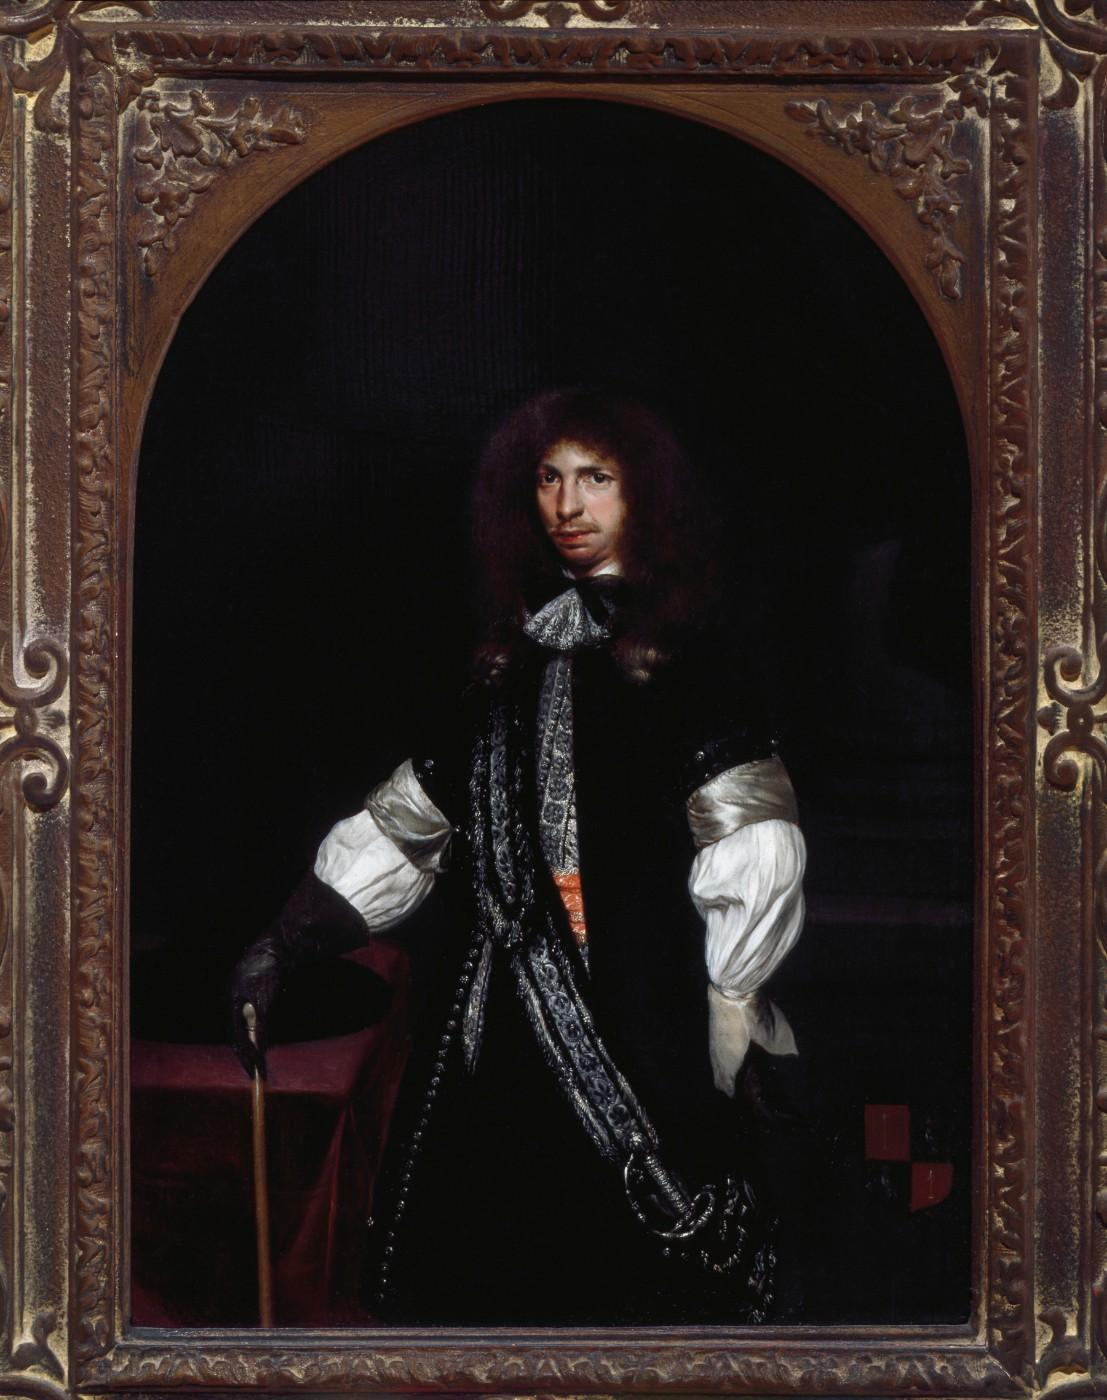 Gerard ter Borch, Jacob de Graeff, c.1674